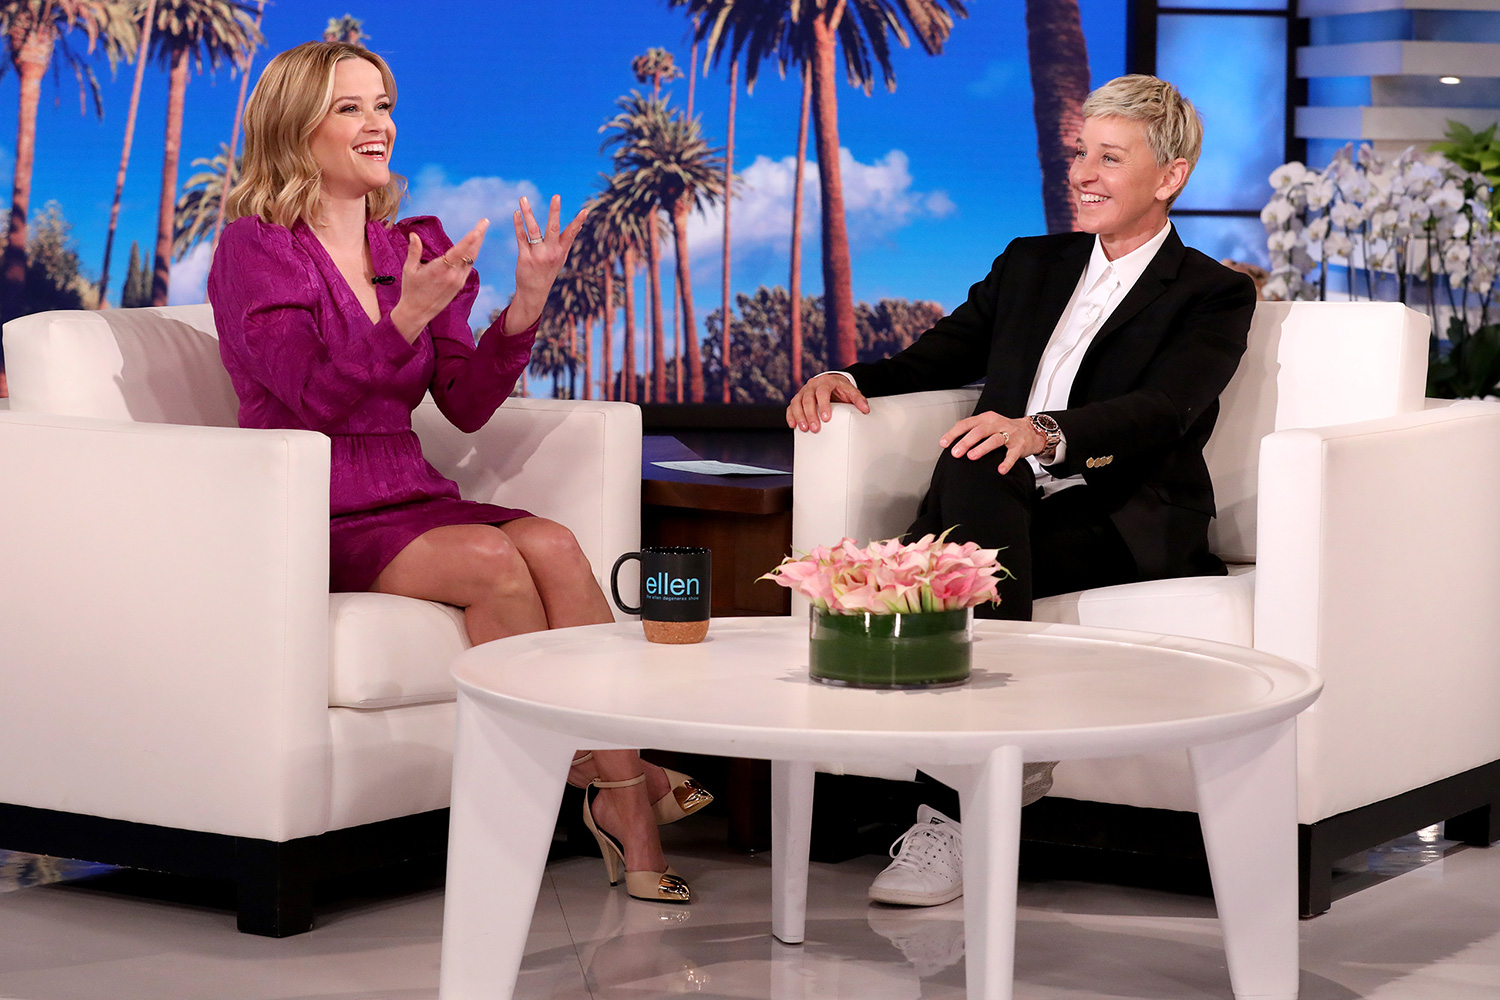 """Academy Award-winning actress Reese Witherspoon makes an appearance on """"The Ellen DeGeneres Show"""" on Monday, March 16th."""